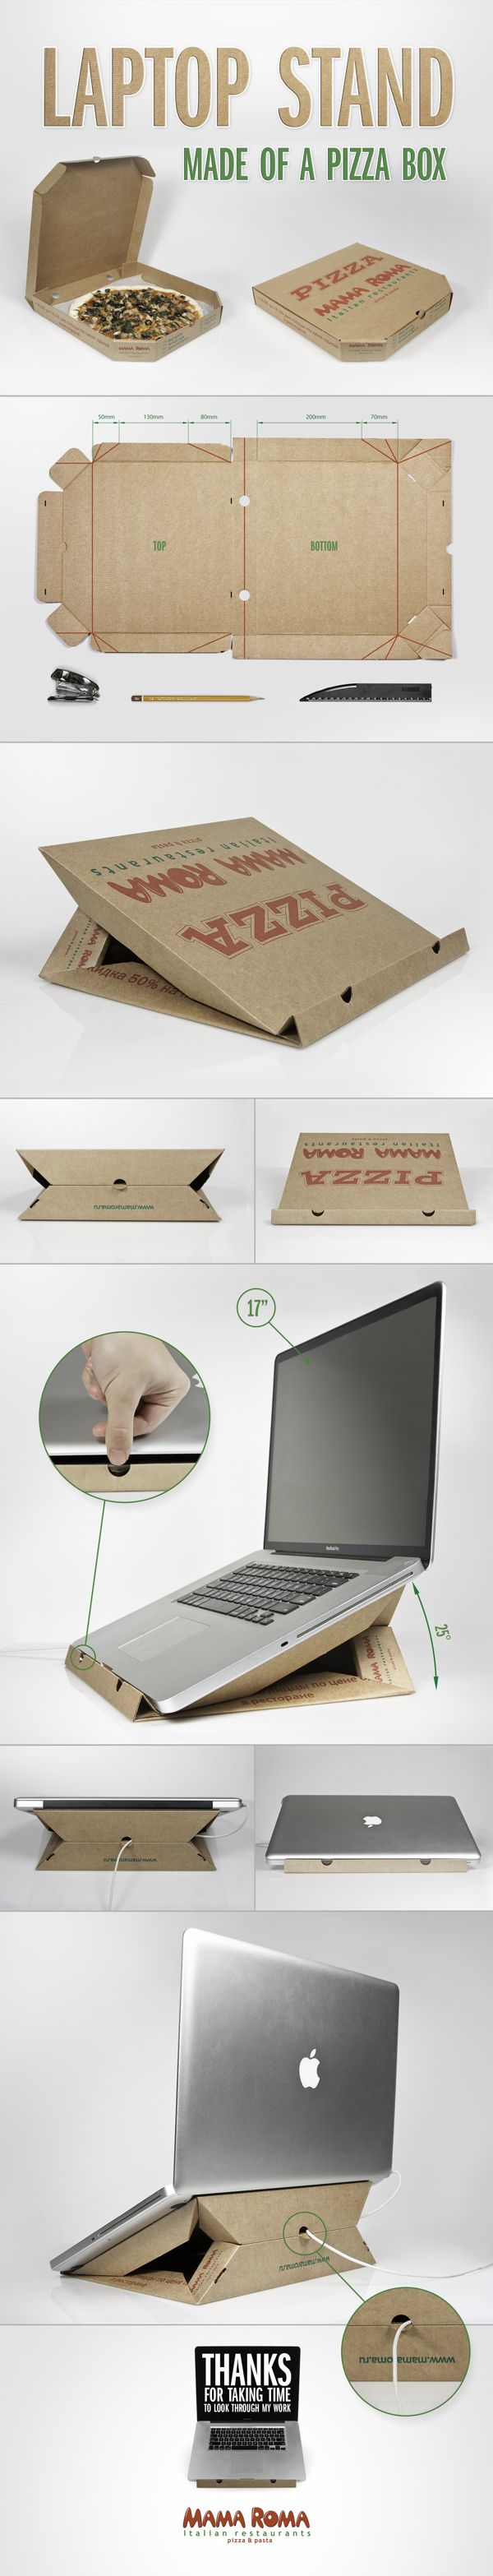 Laptop stand made of a pizza box by Ilya Andreev, via Behance